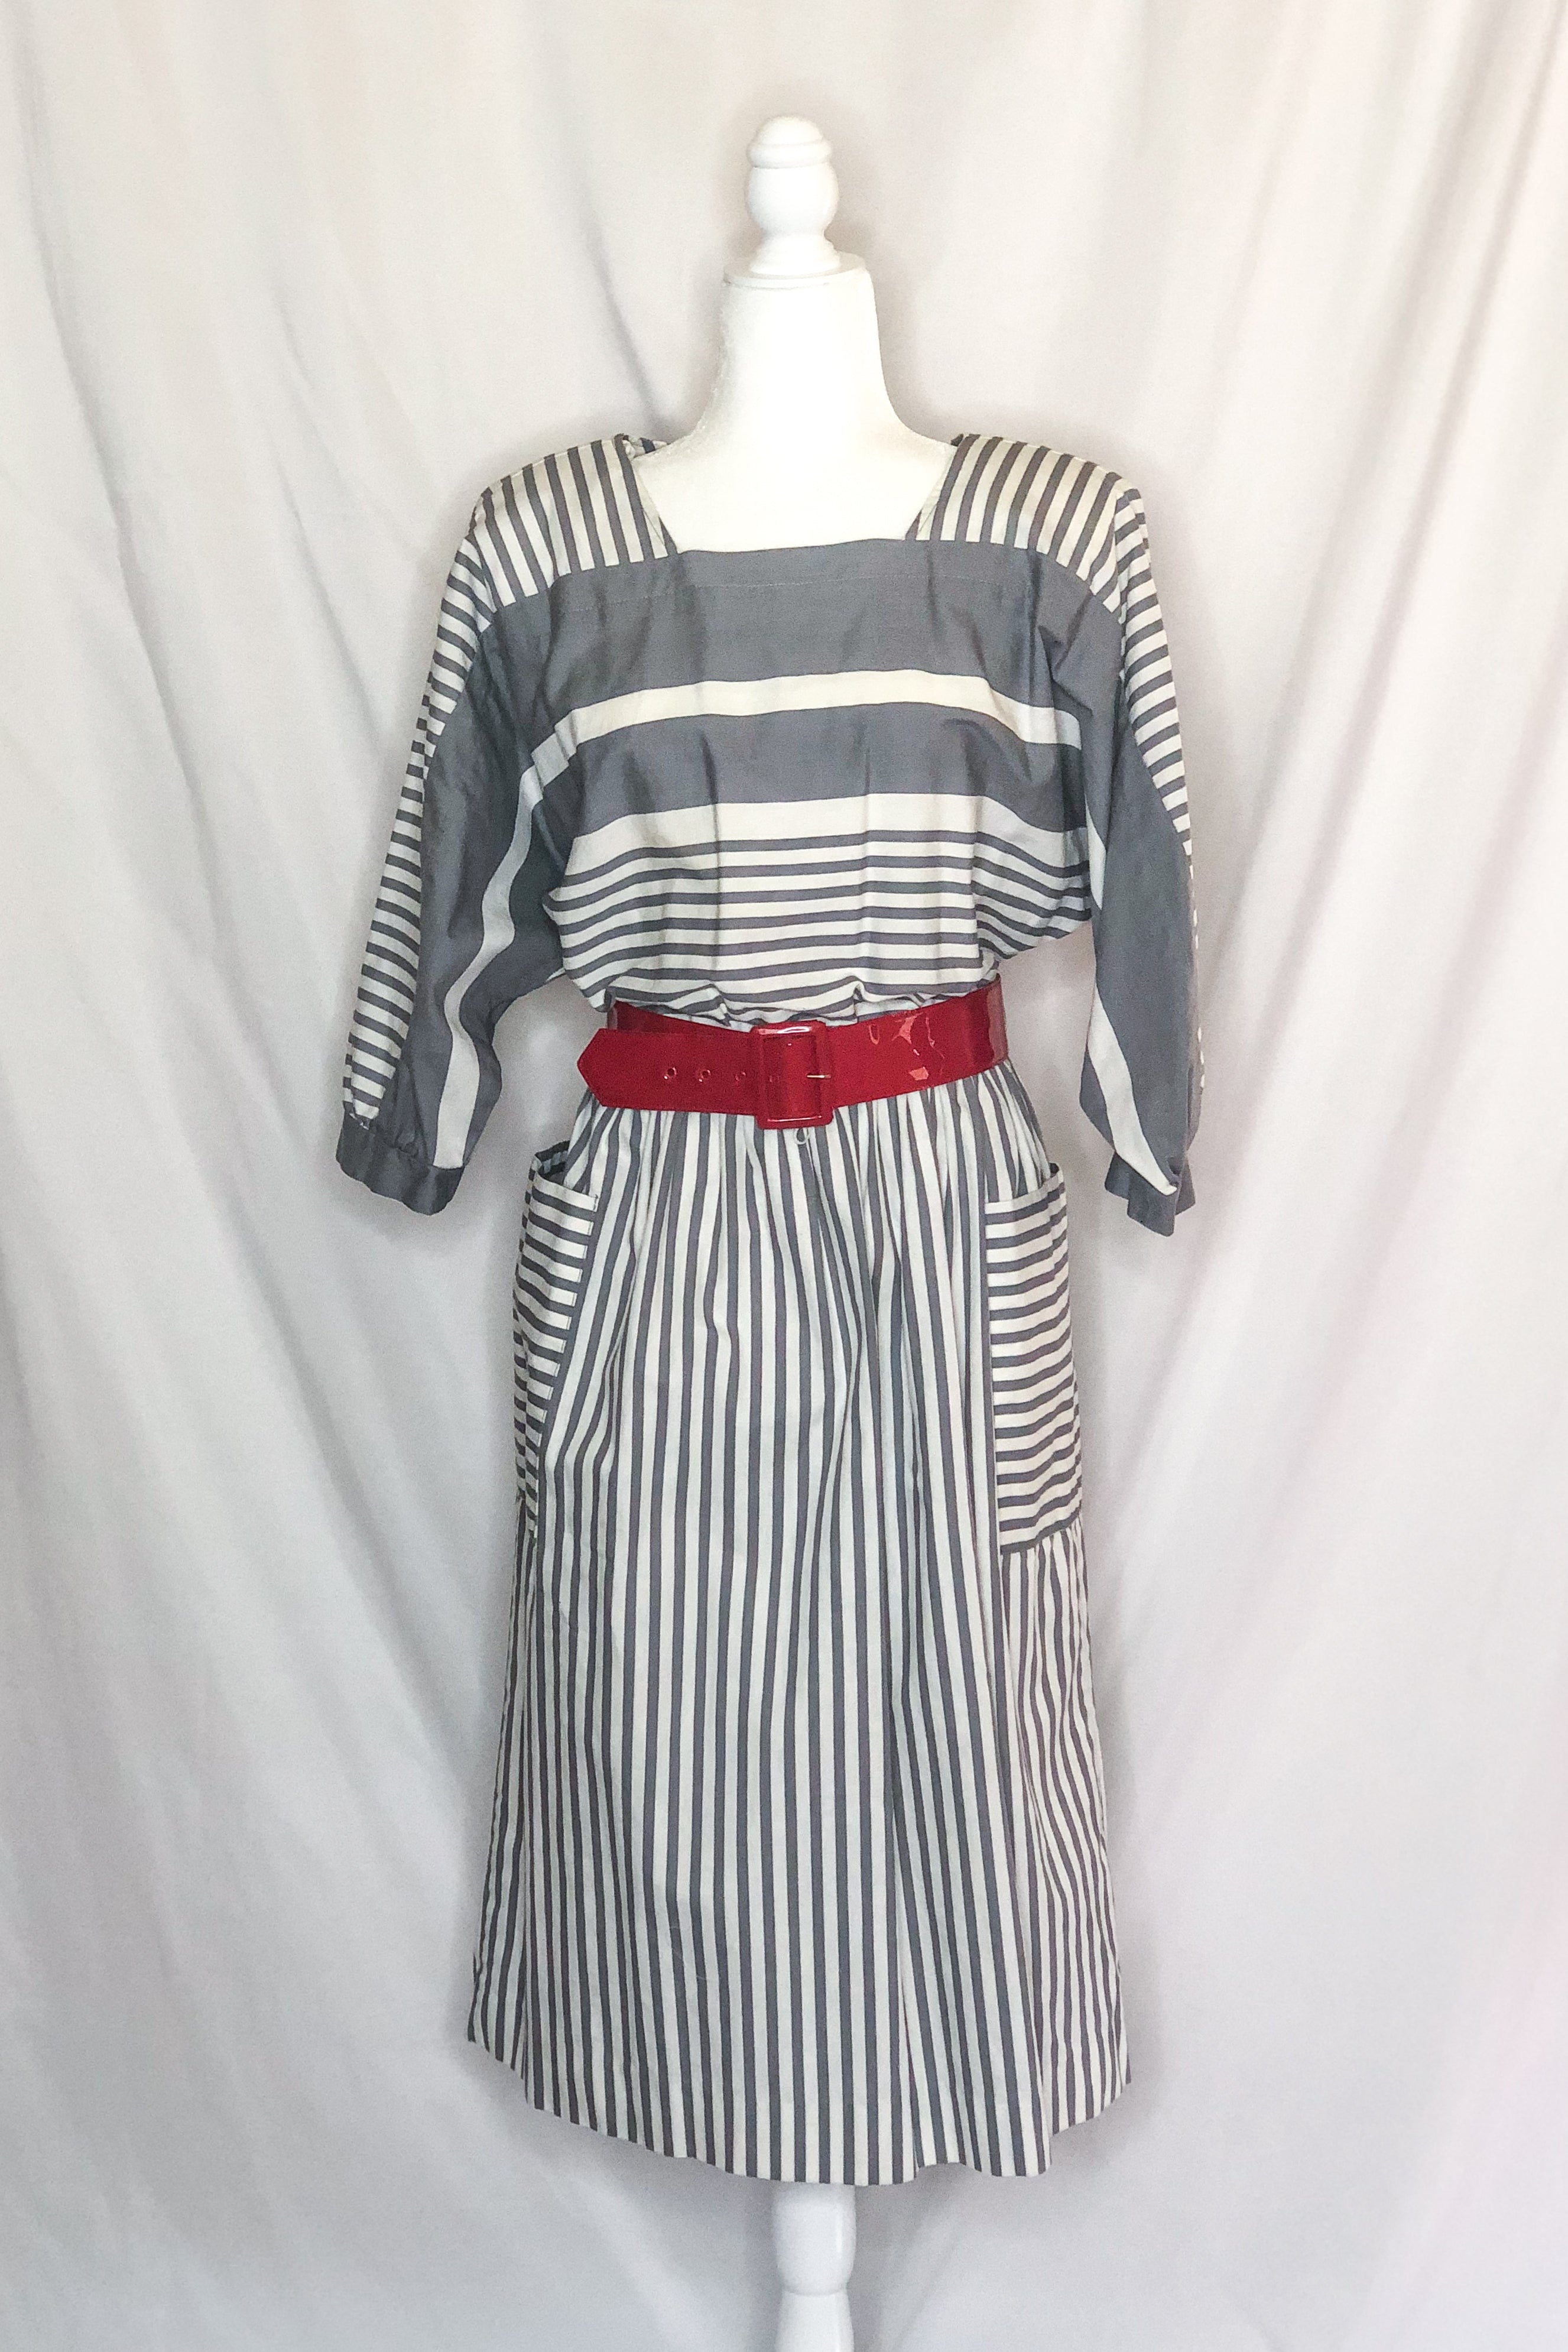 Vintage 80s Grey and White Striped Dress / M-L